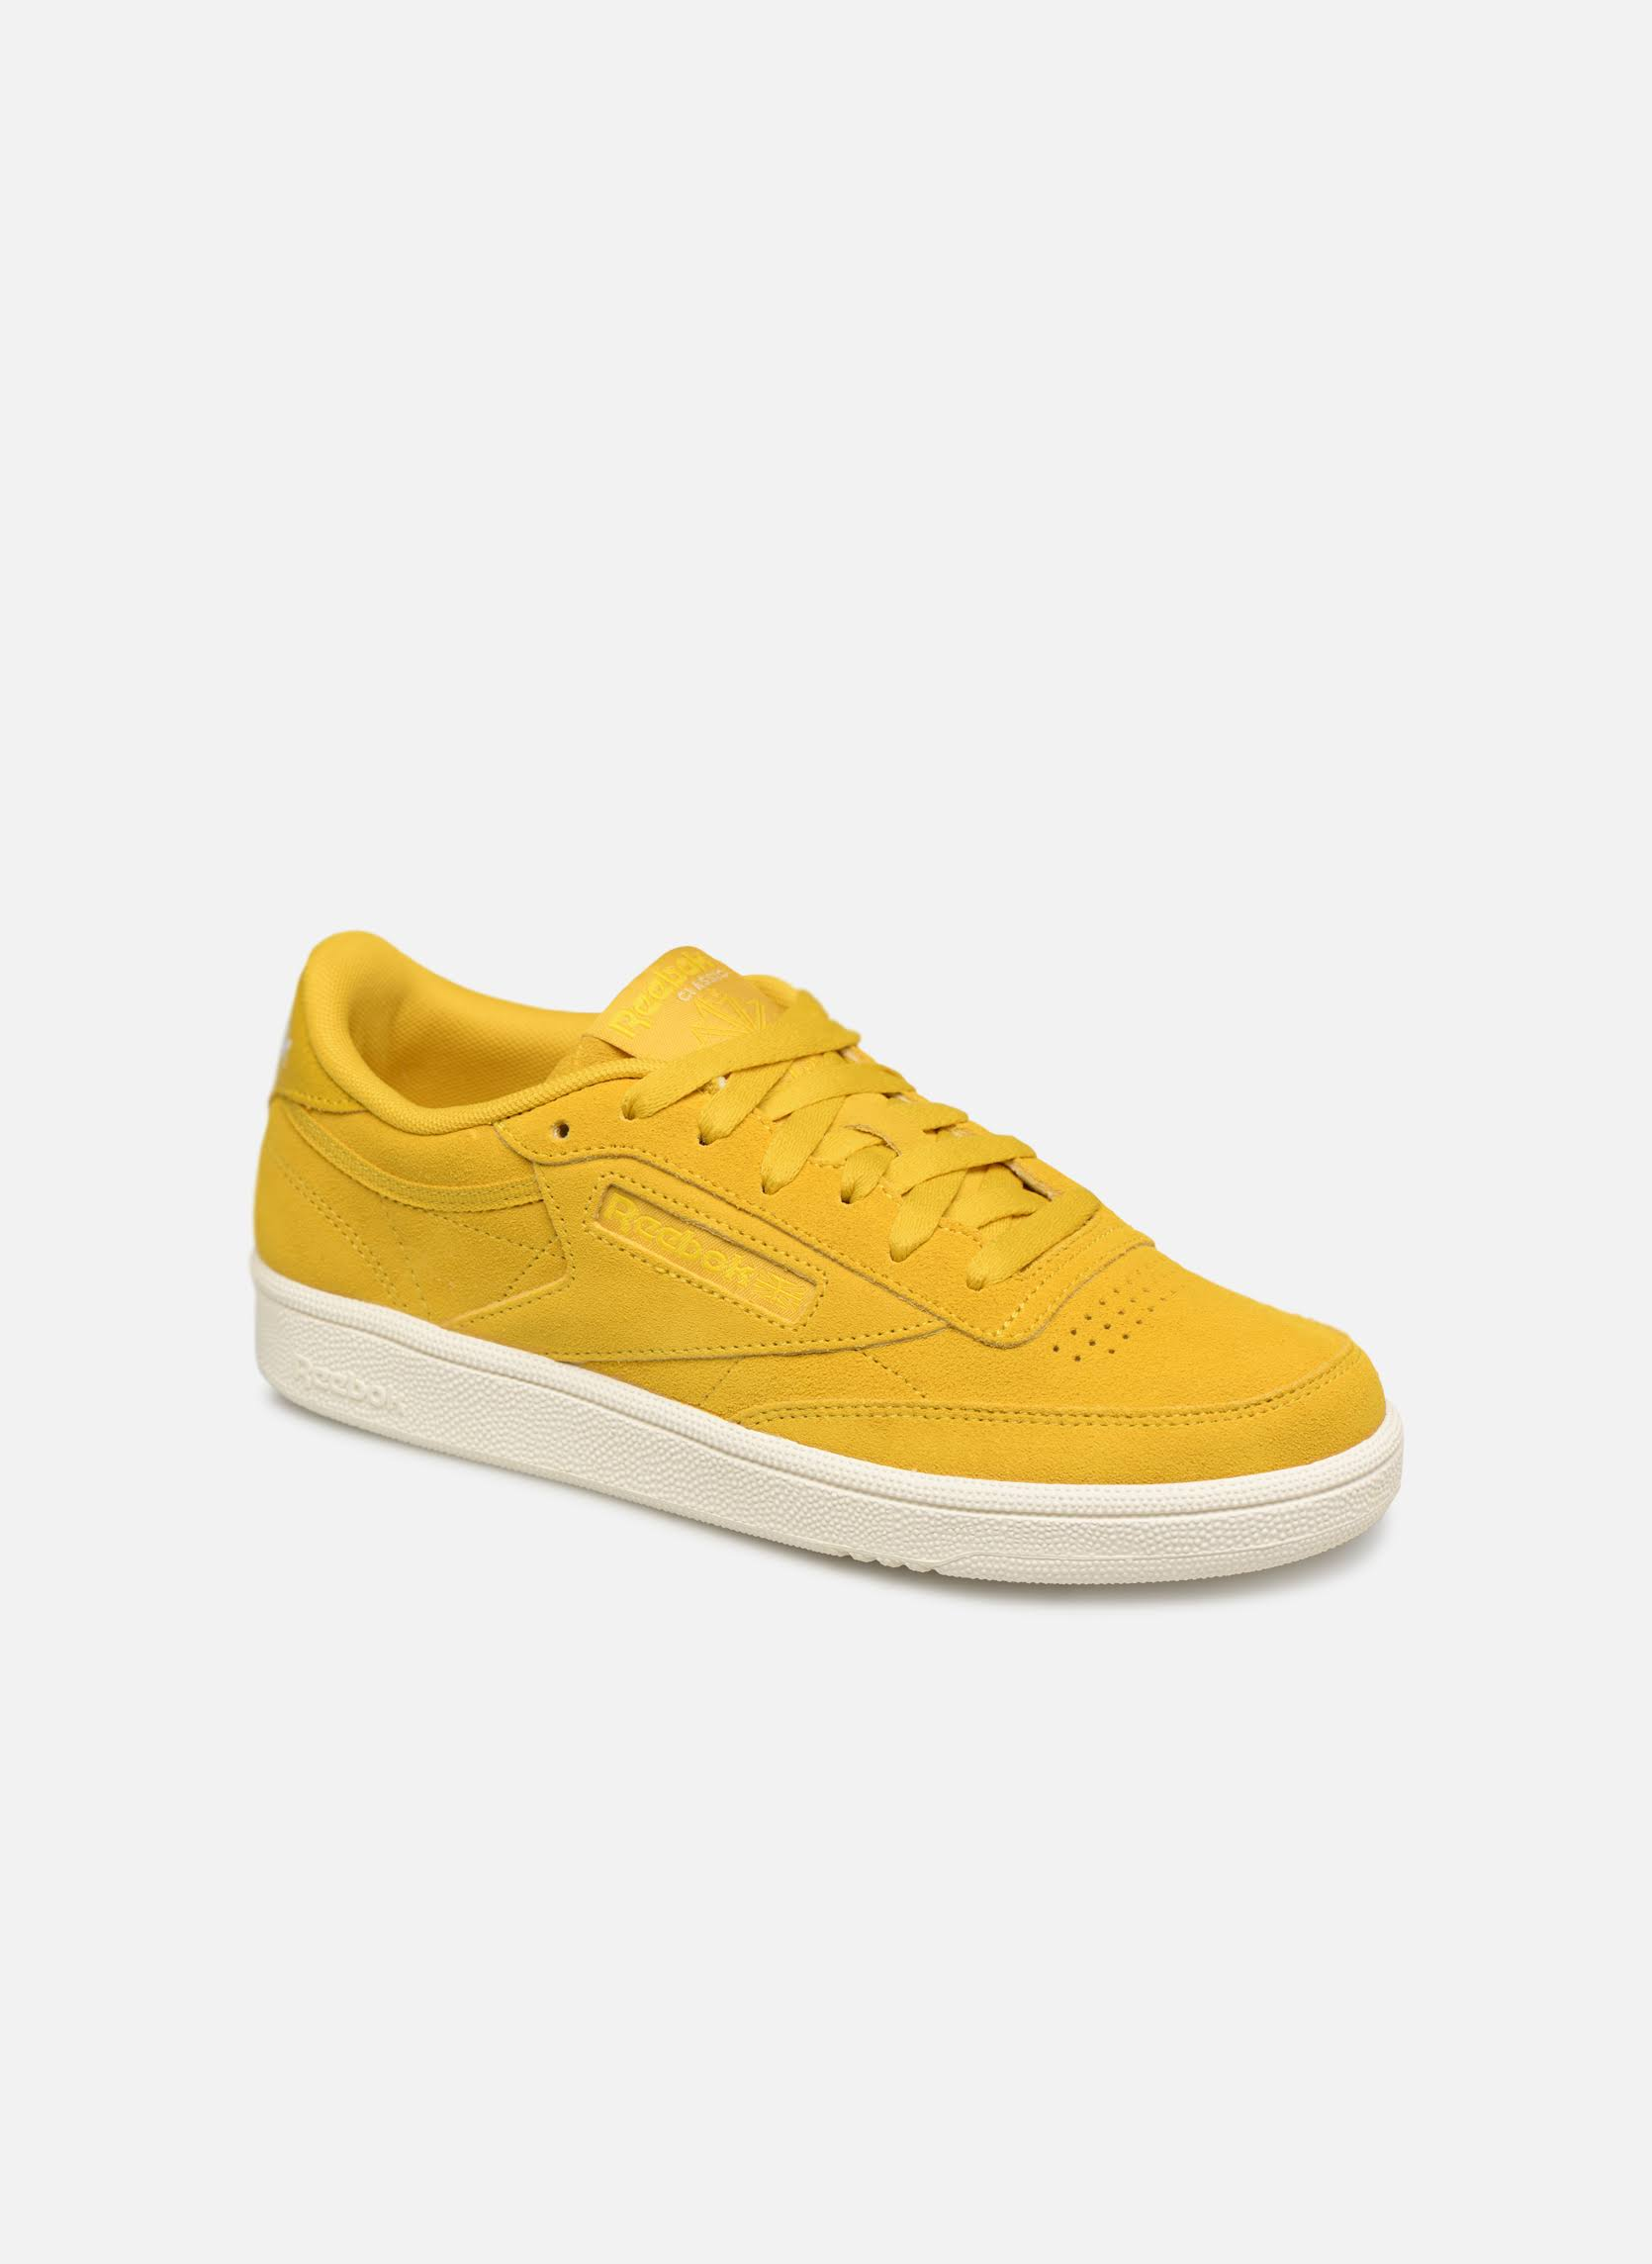 85 W YellowScarpe ginnastica 36 Reebok da Yellow Club Urban C taglia uTFJ5lK31c